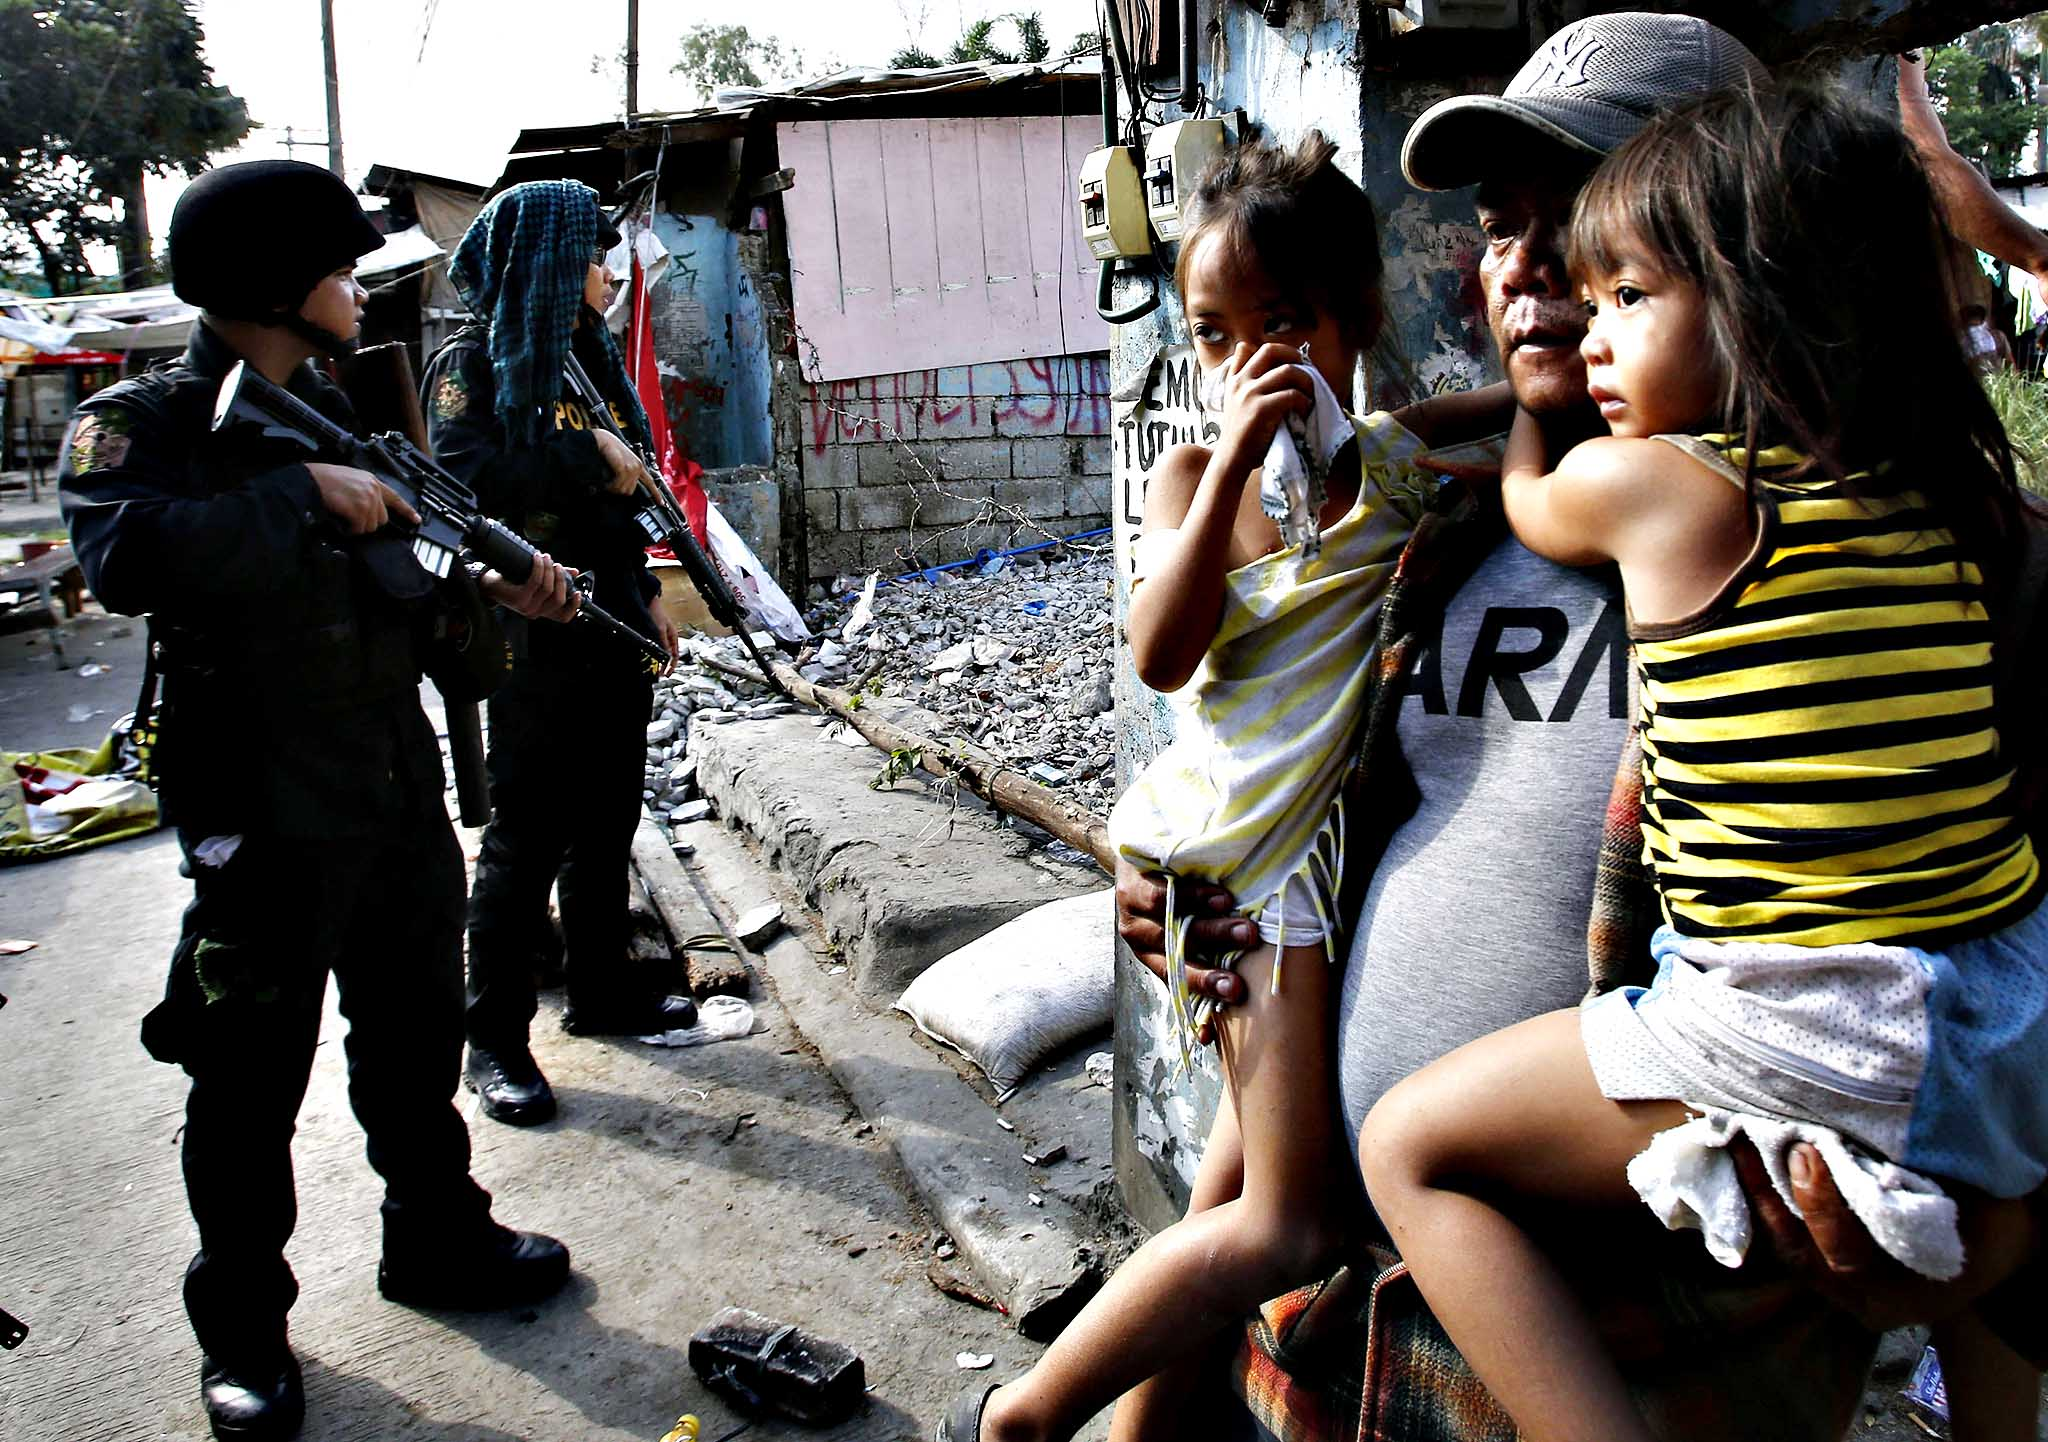 A squatter dweller carries his children as they leave their shanty house during the demolition of a squatter colony in Quezon city, Metro Manila. Dozens were hurt during clashes triggered by the demolition of a squatter settlement for business developments in suburban Quezon city on Monday, local media reported.